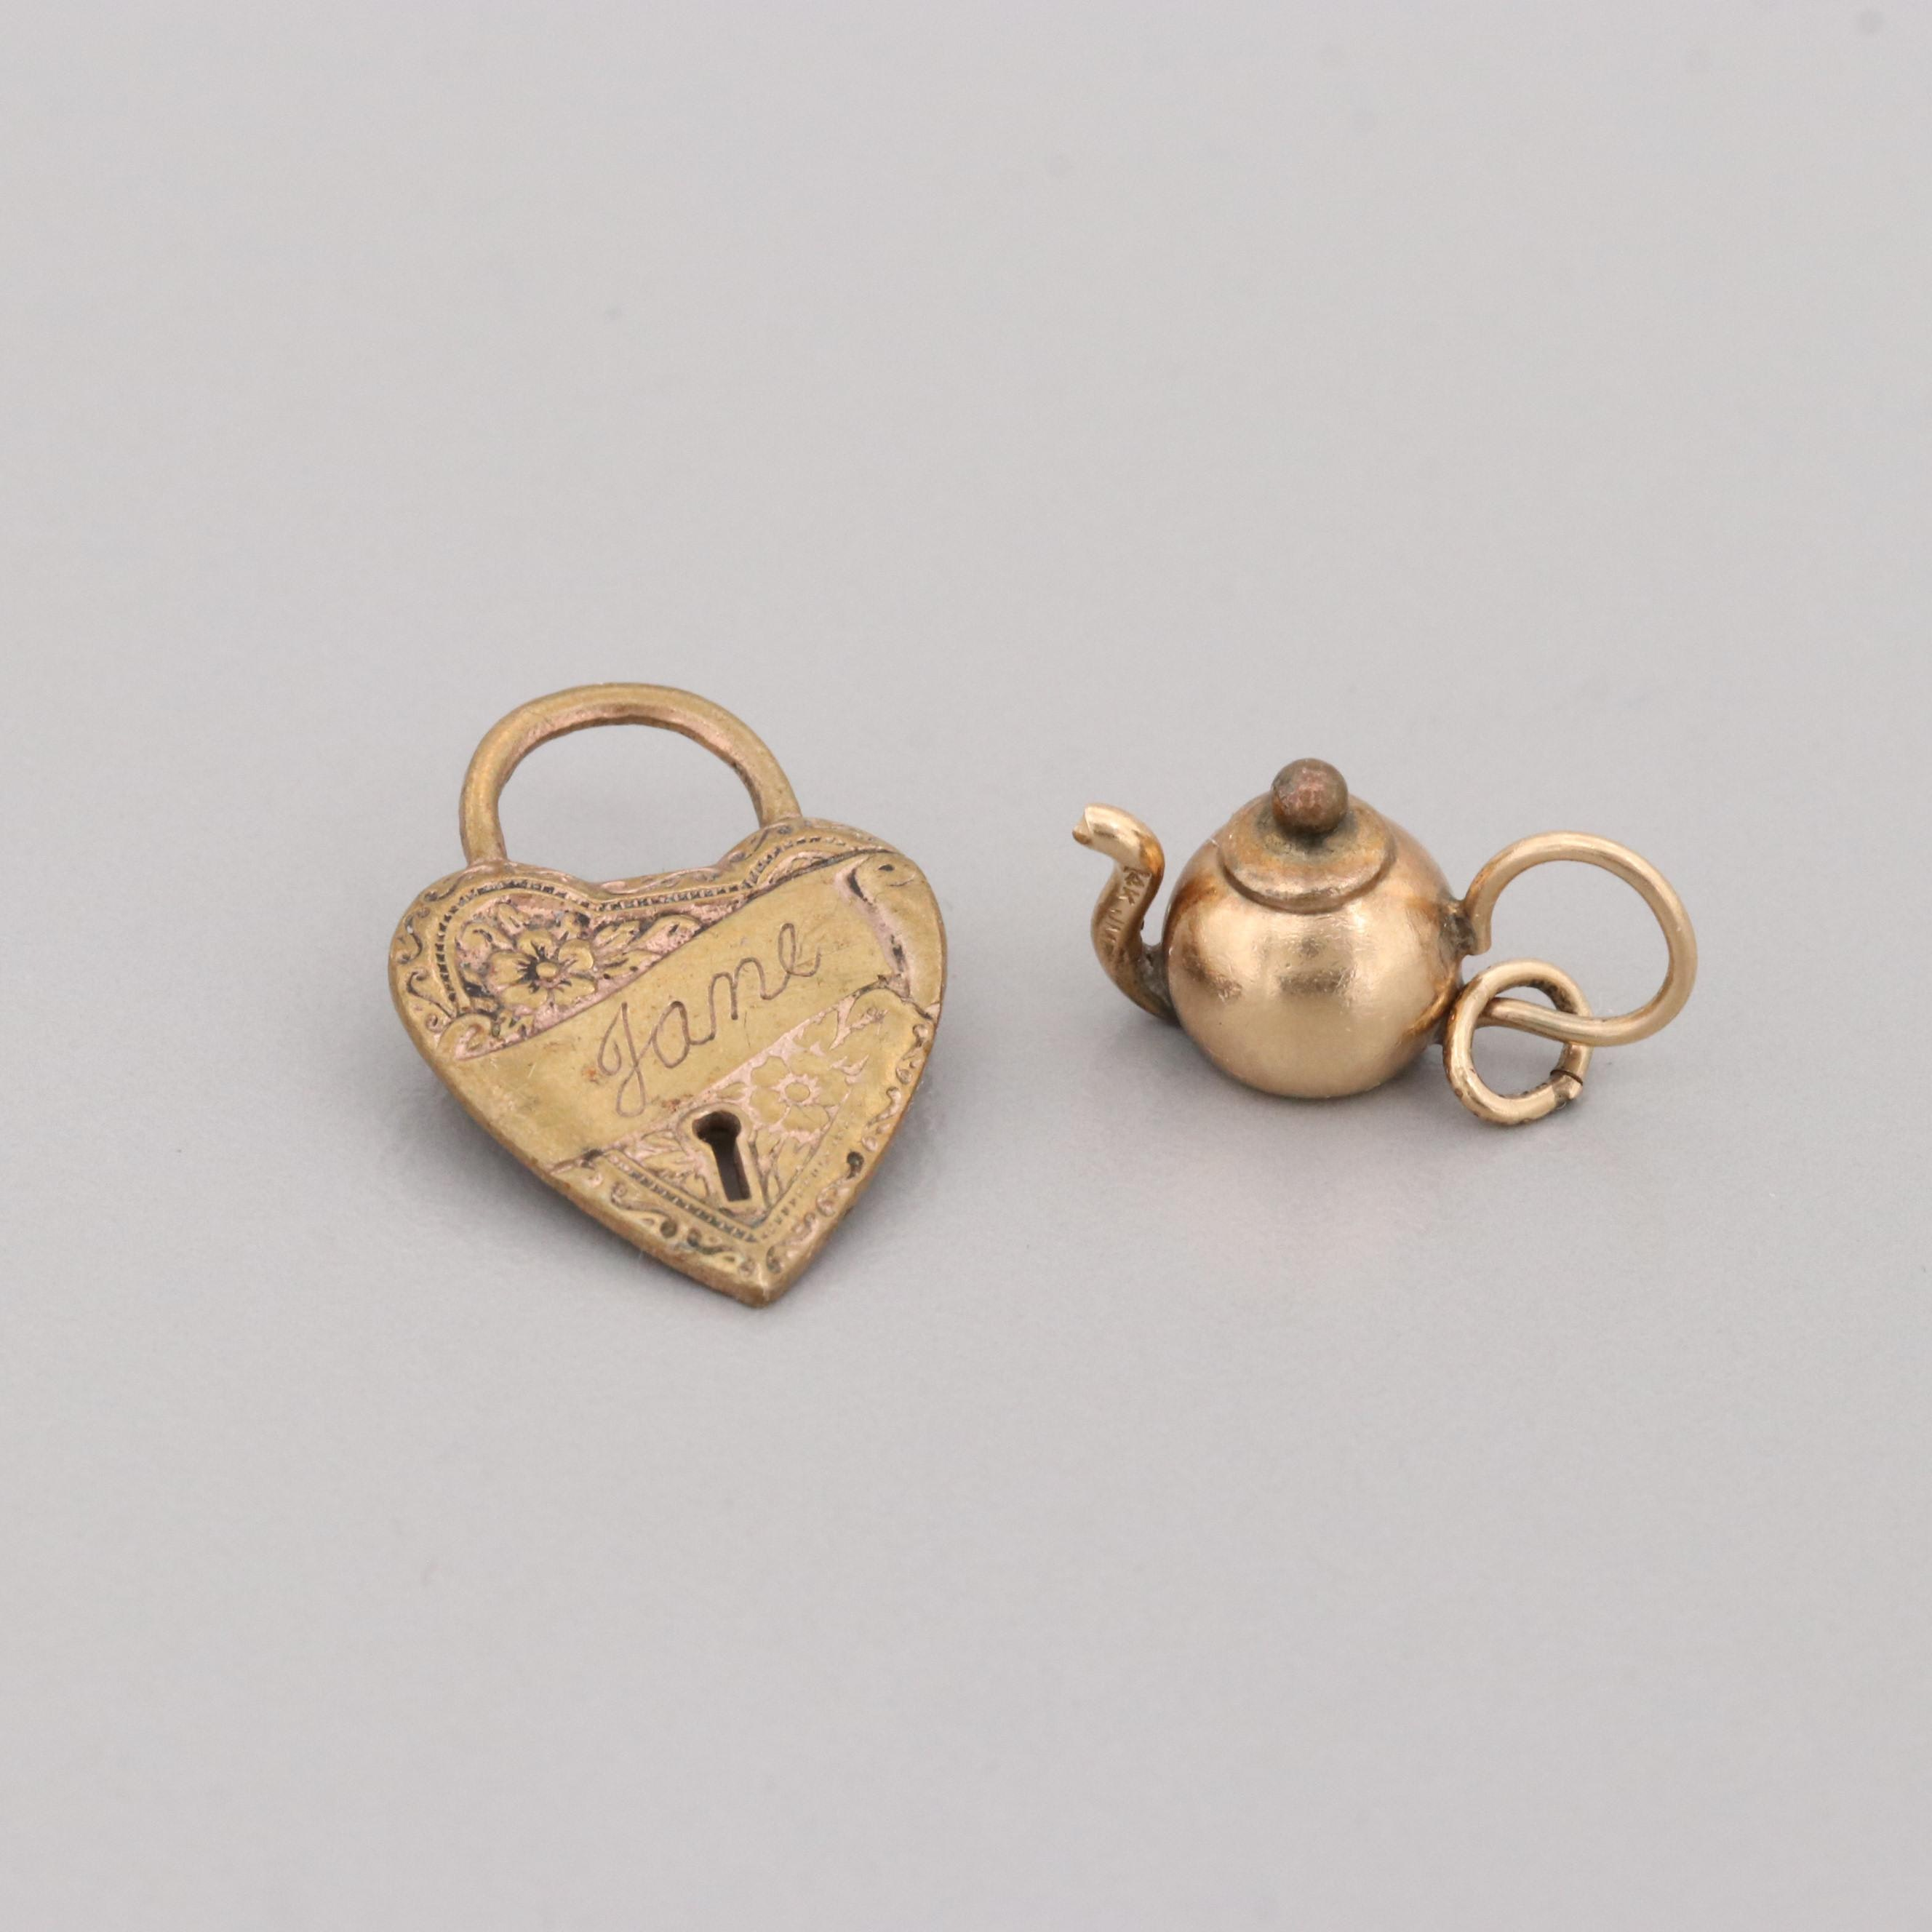 Antique 14K Yellow Gold Teapot Charm and Gold Tone Engraved Heart Brooch